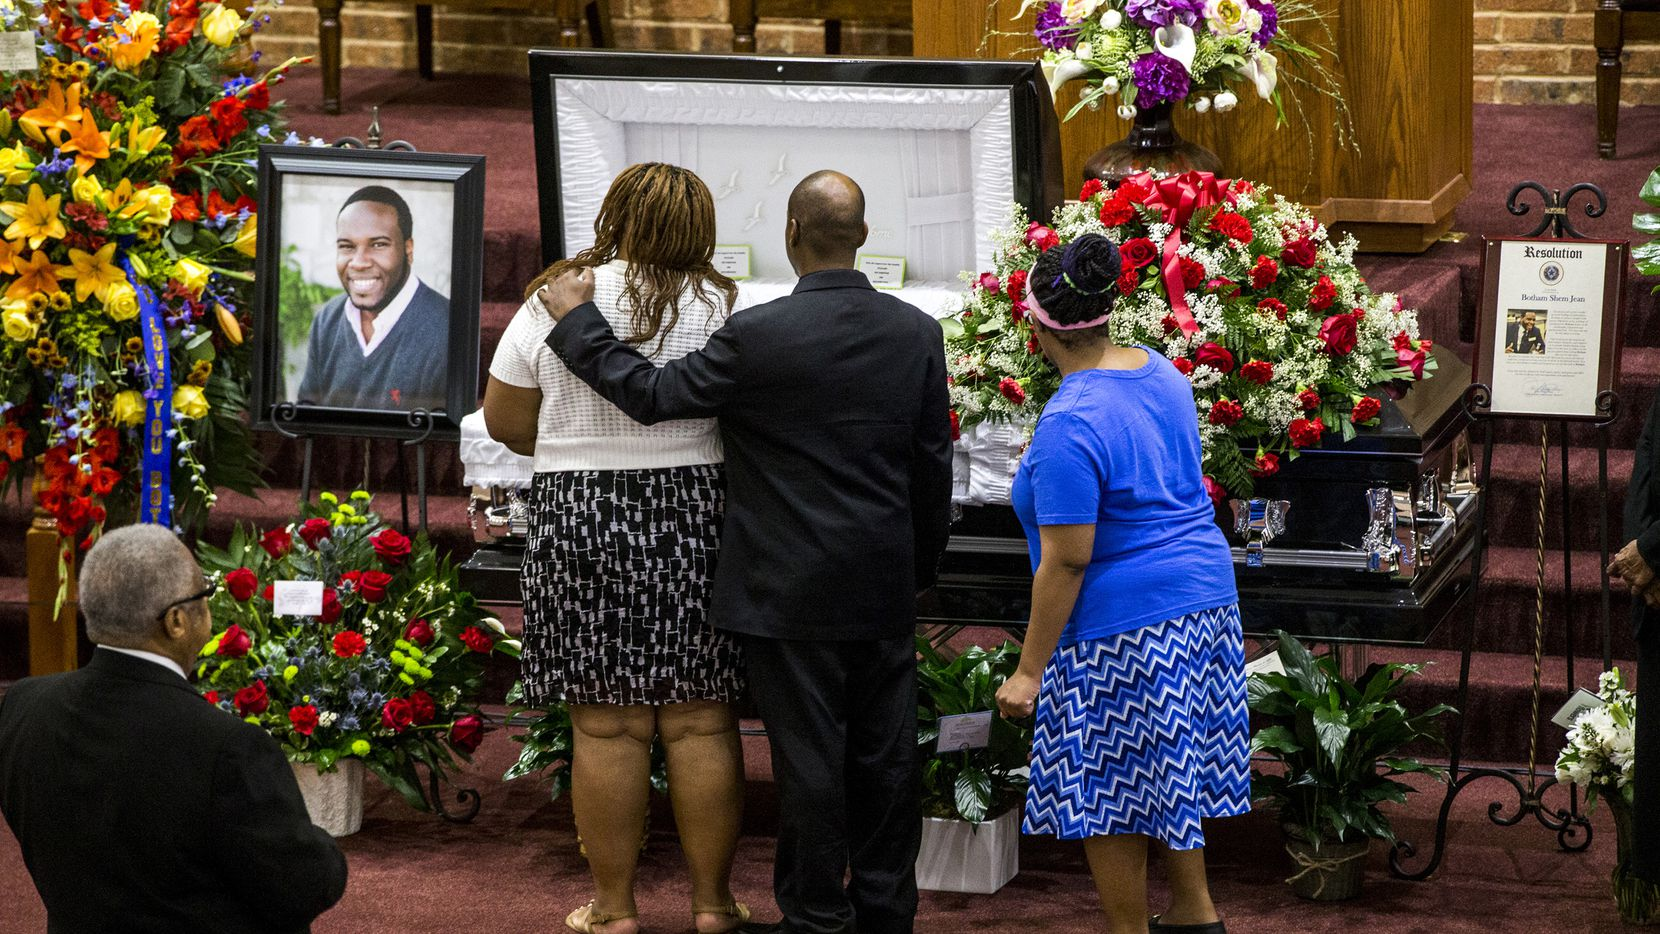 Mourners console each other during the public viewing before the funeral of Botham Shem Jean at the Greenville Avenue Church of Christ on Thursday, Sept. 13, 2018 in Richardson, Texas. He was shot and killed by a Dallas police officer in his apartment last week in Dallas. (Shaban Athuman/Dallas Morning News)